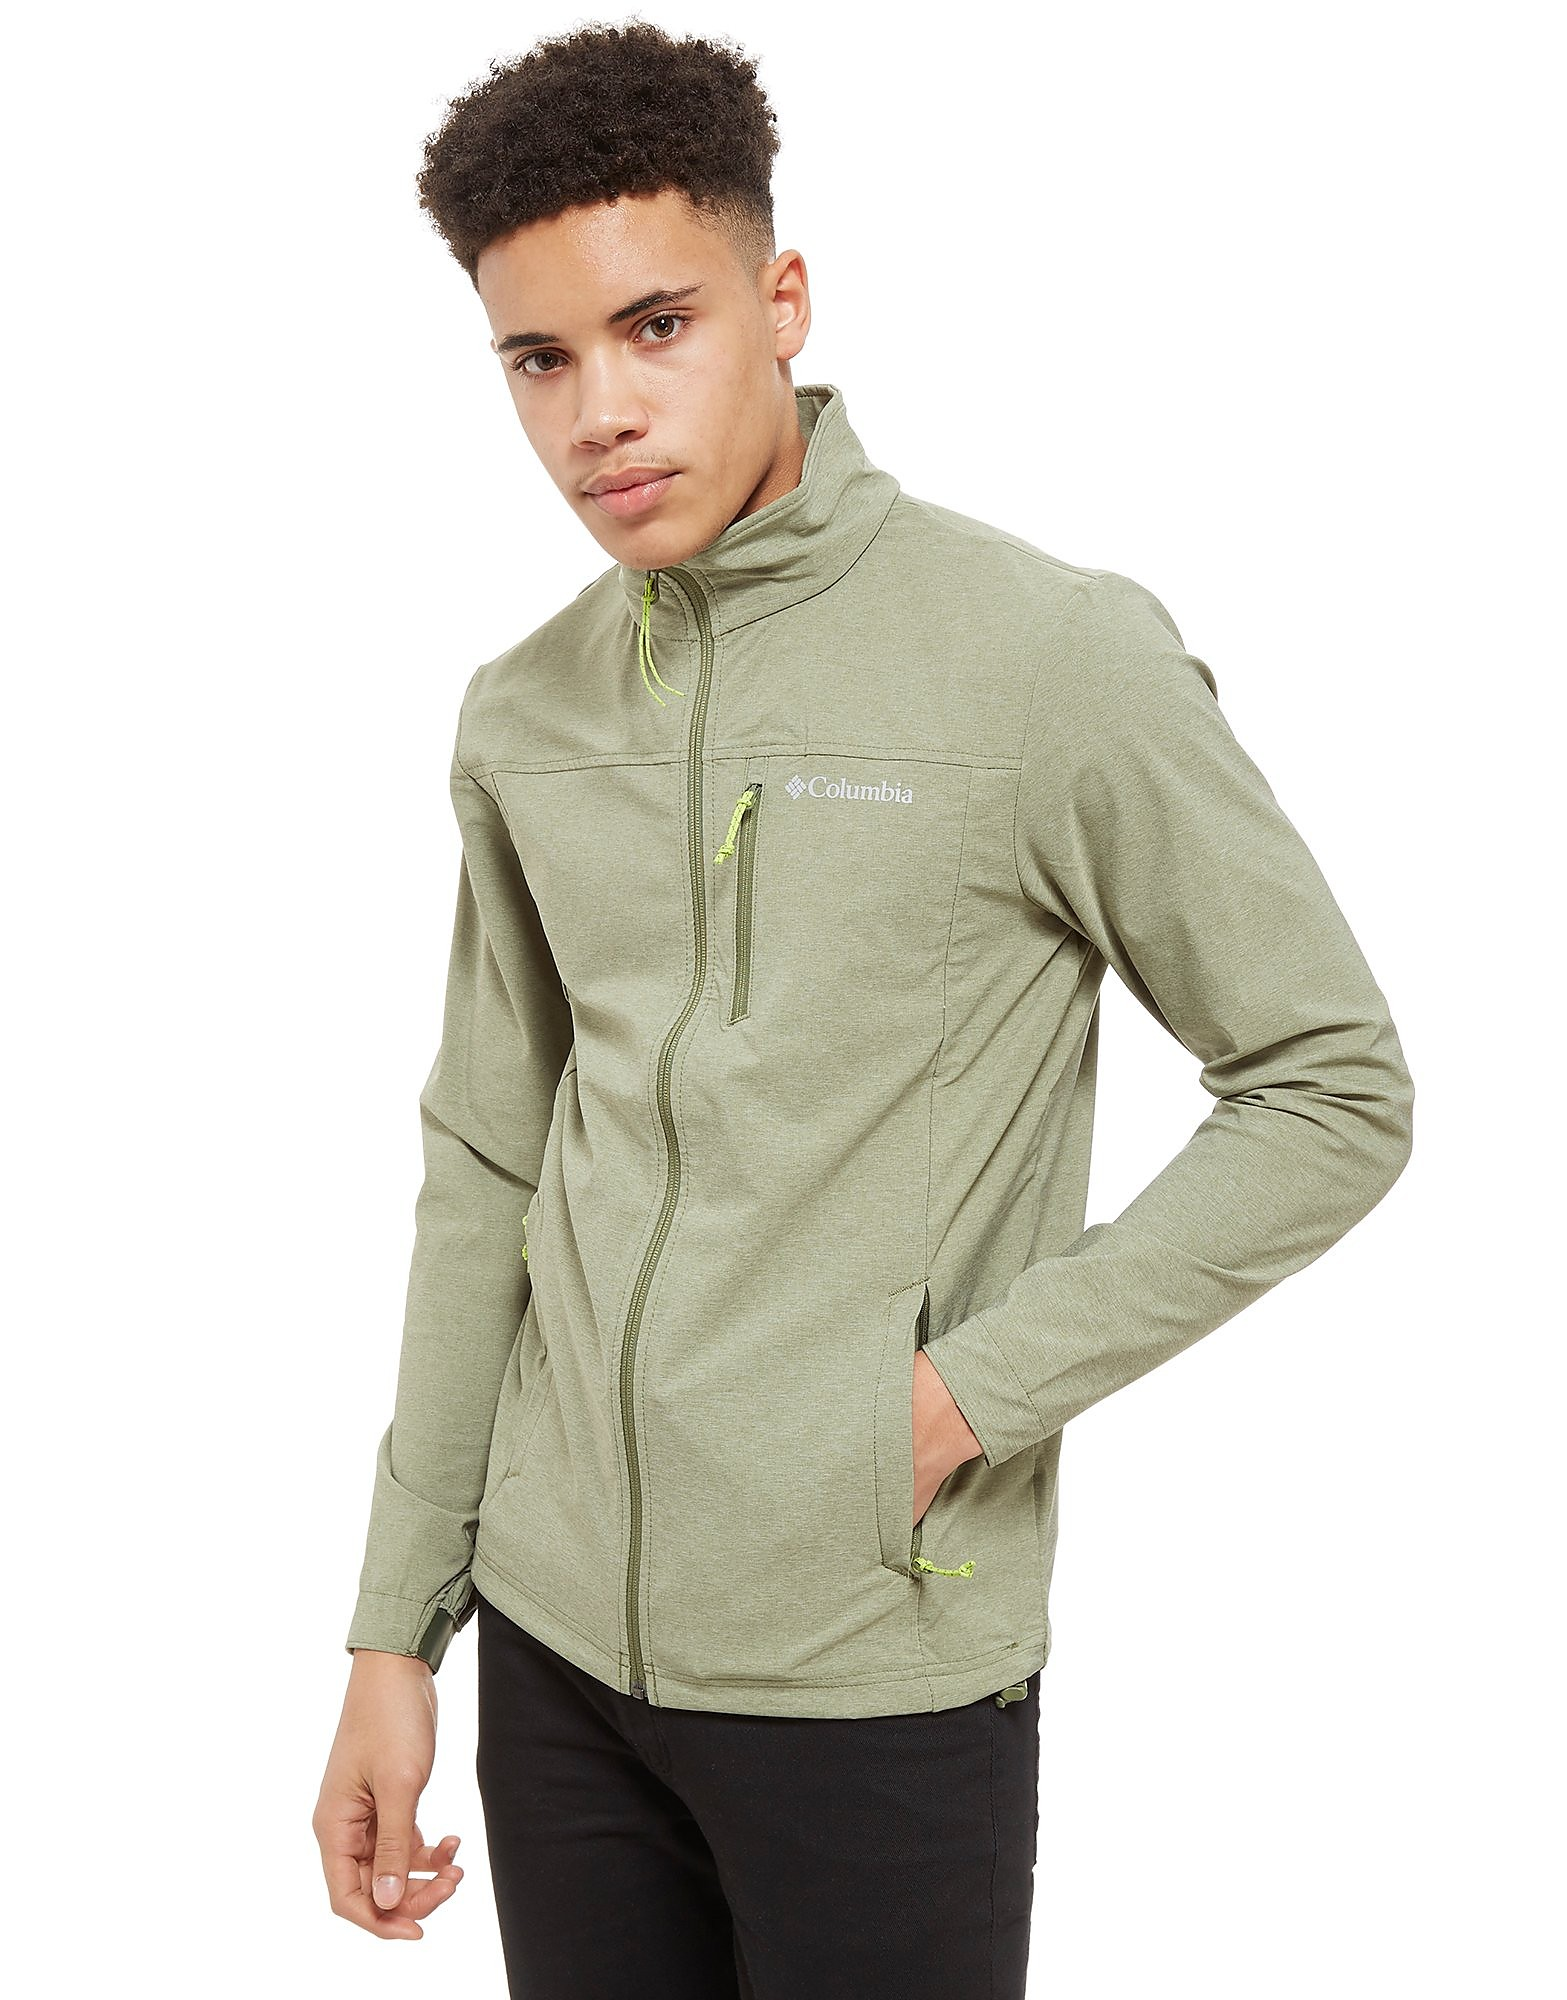 Columbia Softshell Zip Through Track Top